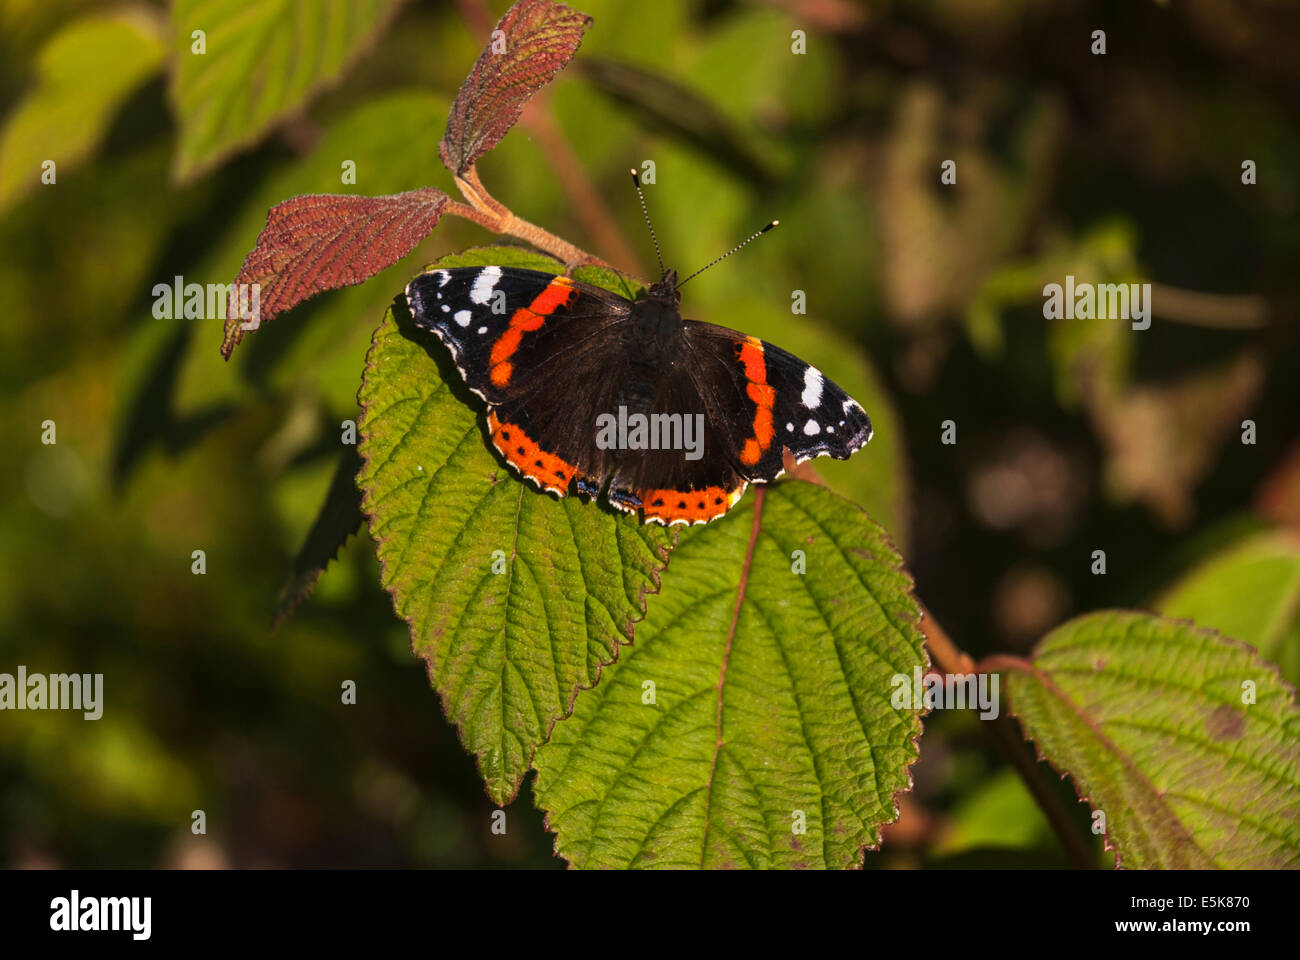 Dorsal view of the Red Admiral, Vanessa atalanta, butterfly at rest in the sunshine. Stock Photo